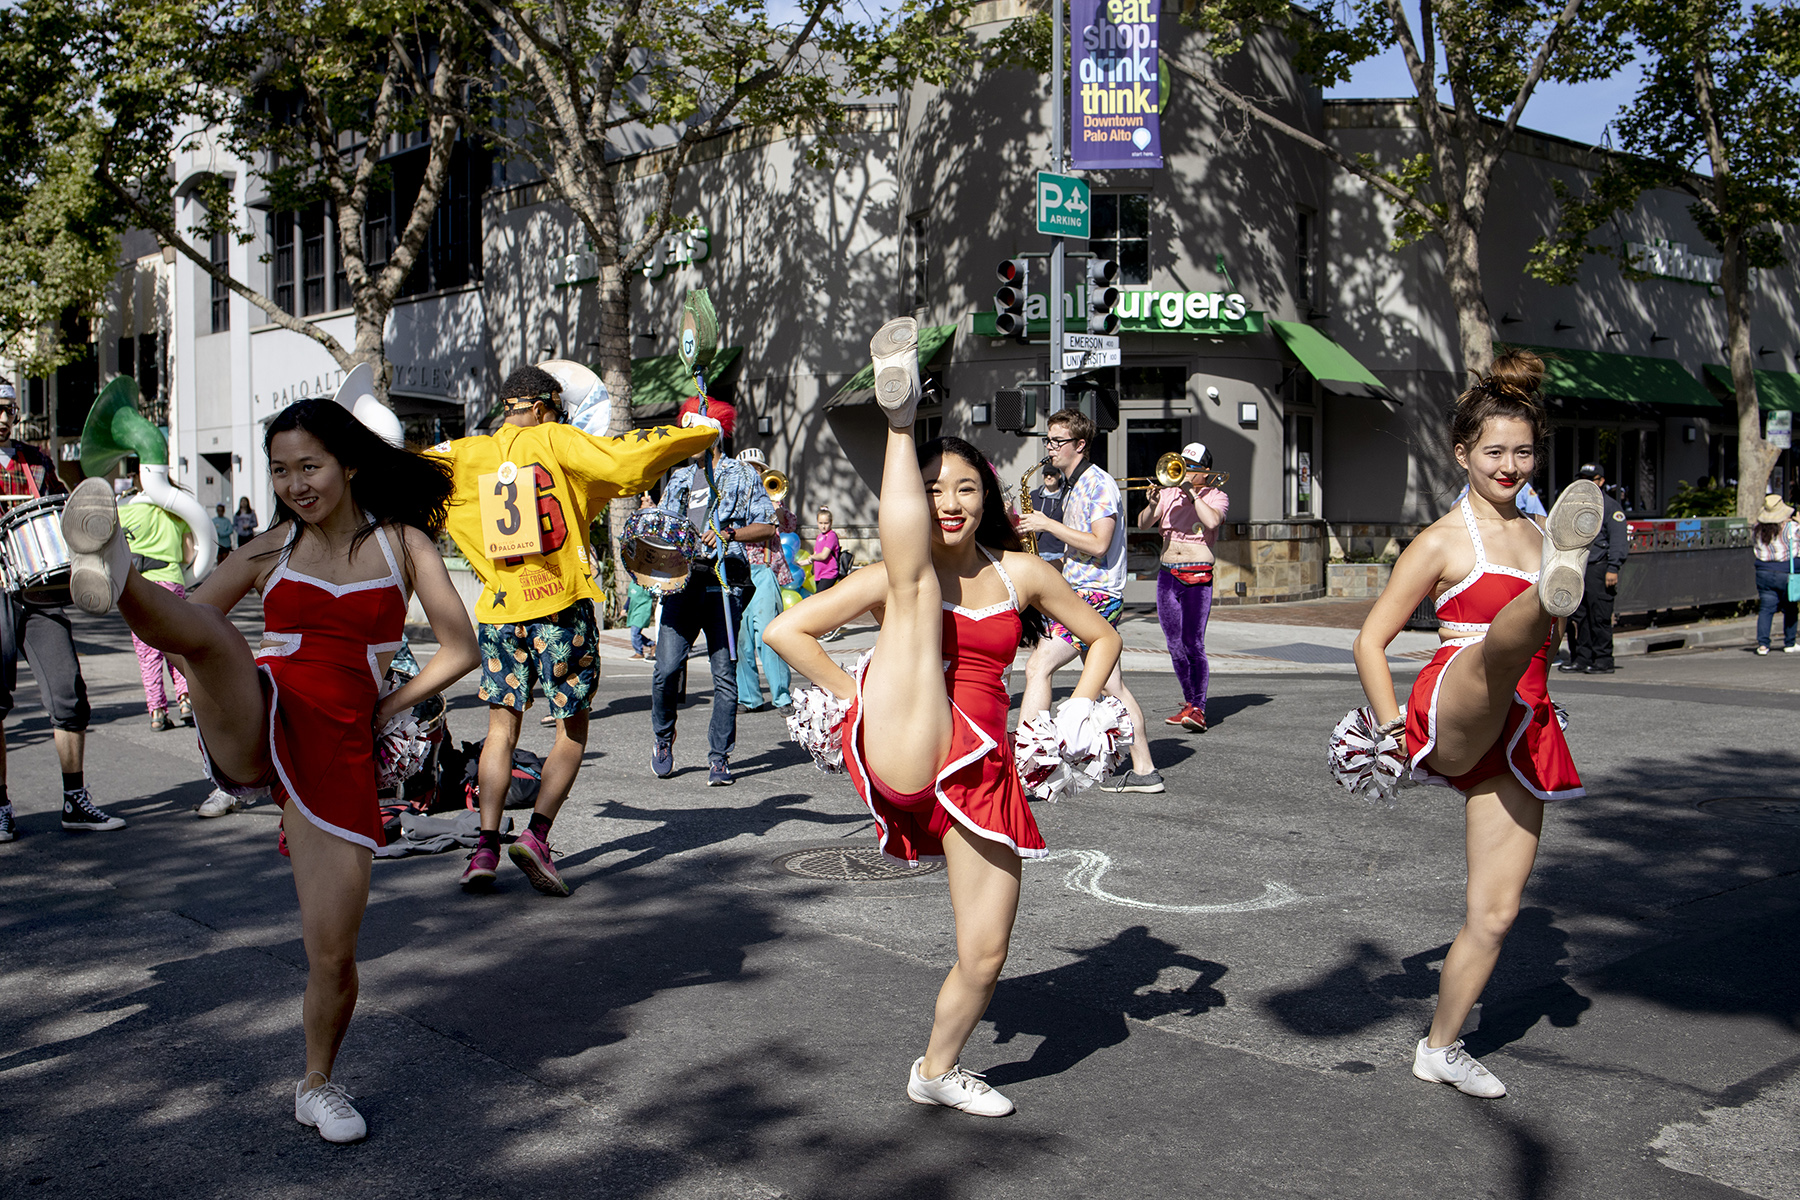 The Stanford Cheerleading Squad rehearses before performing during the 97th annual May Fete Parade, a major town event, on University Avenue in Palo Alto, Calif., on May 4, 2019.